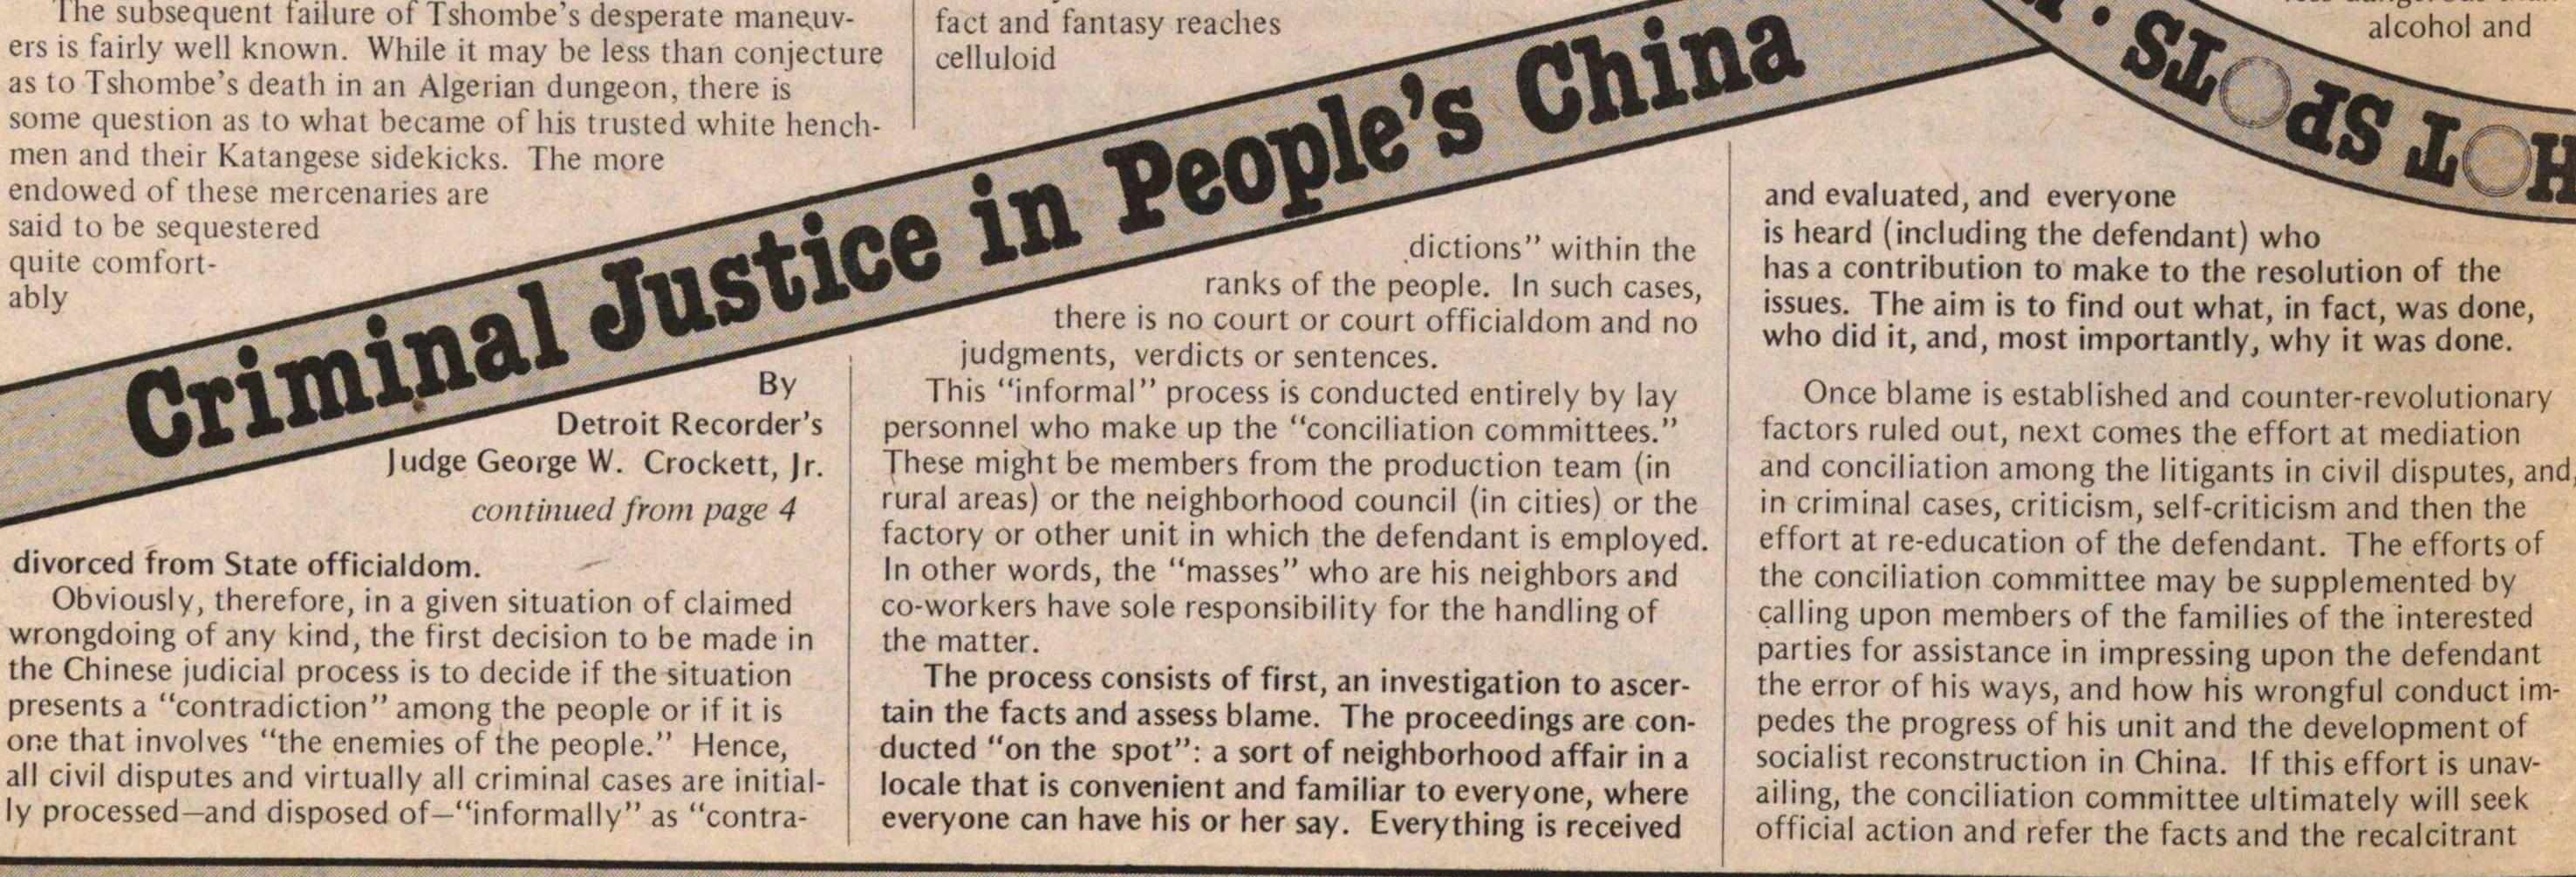 Special Report Criminal Justice In People's China image